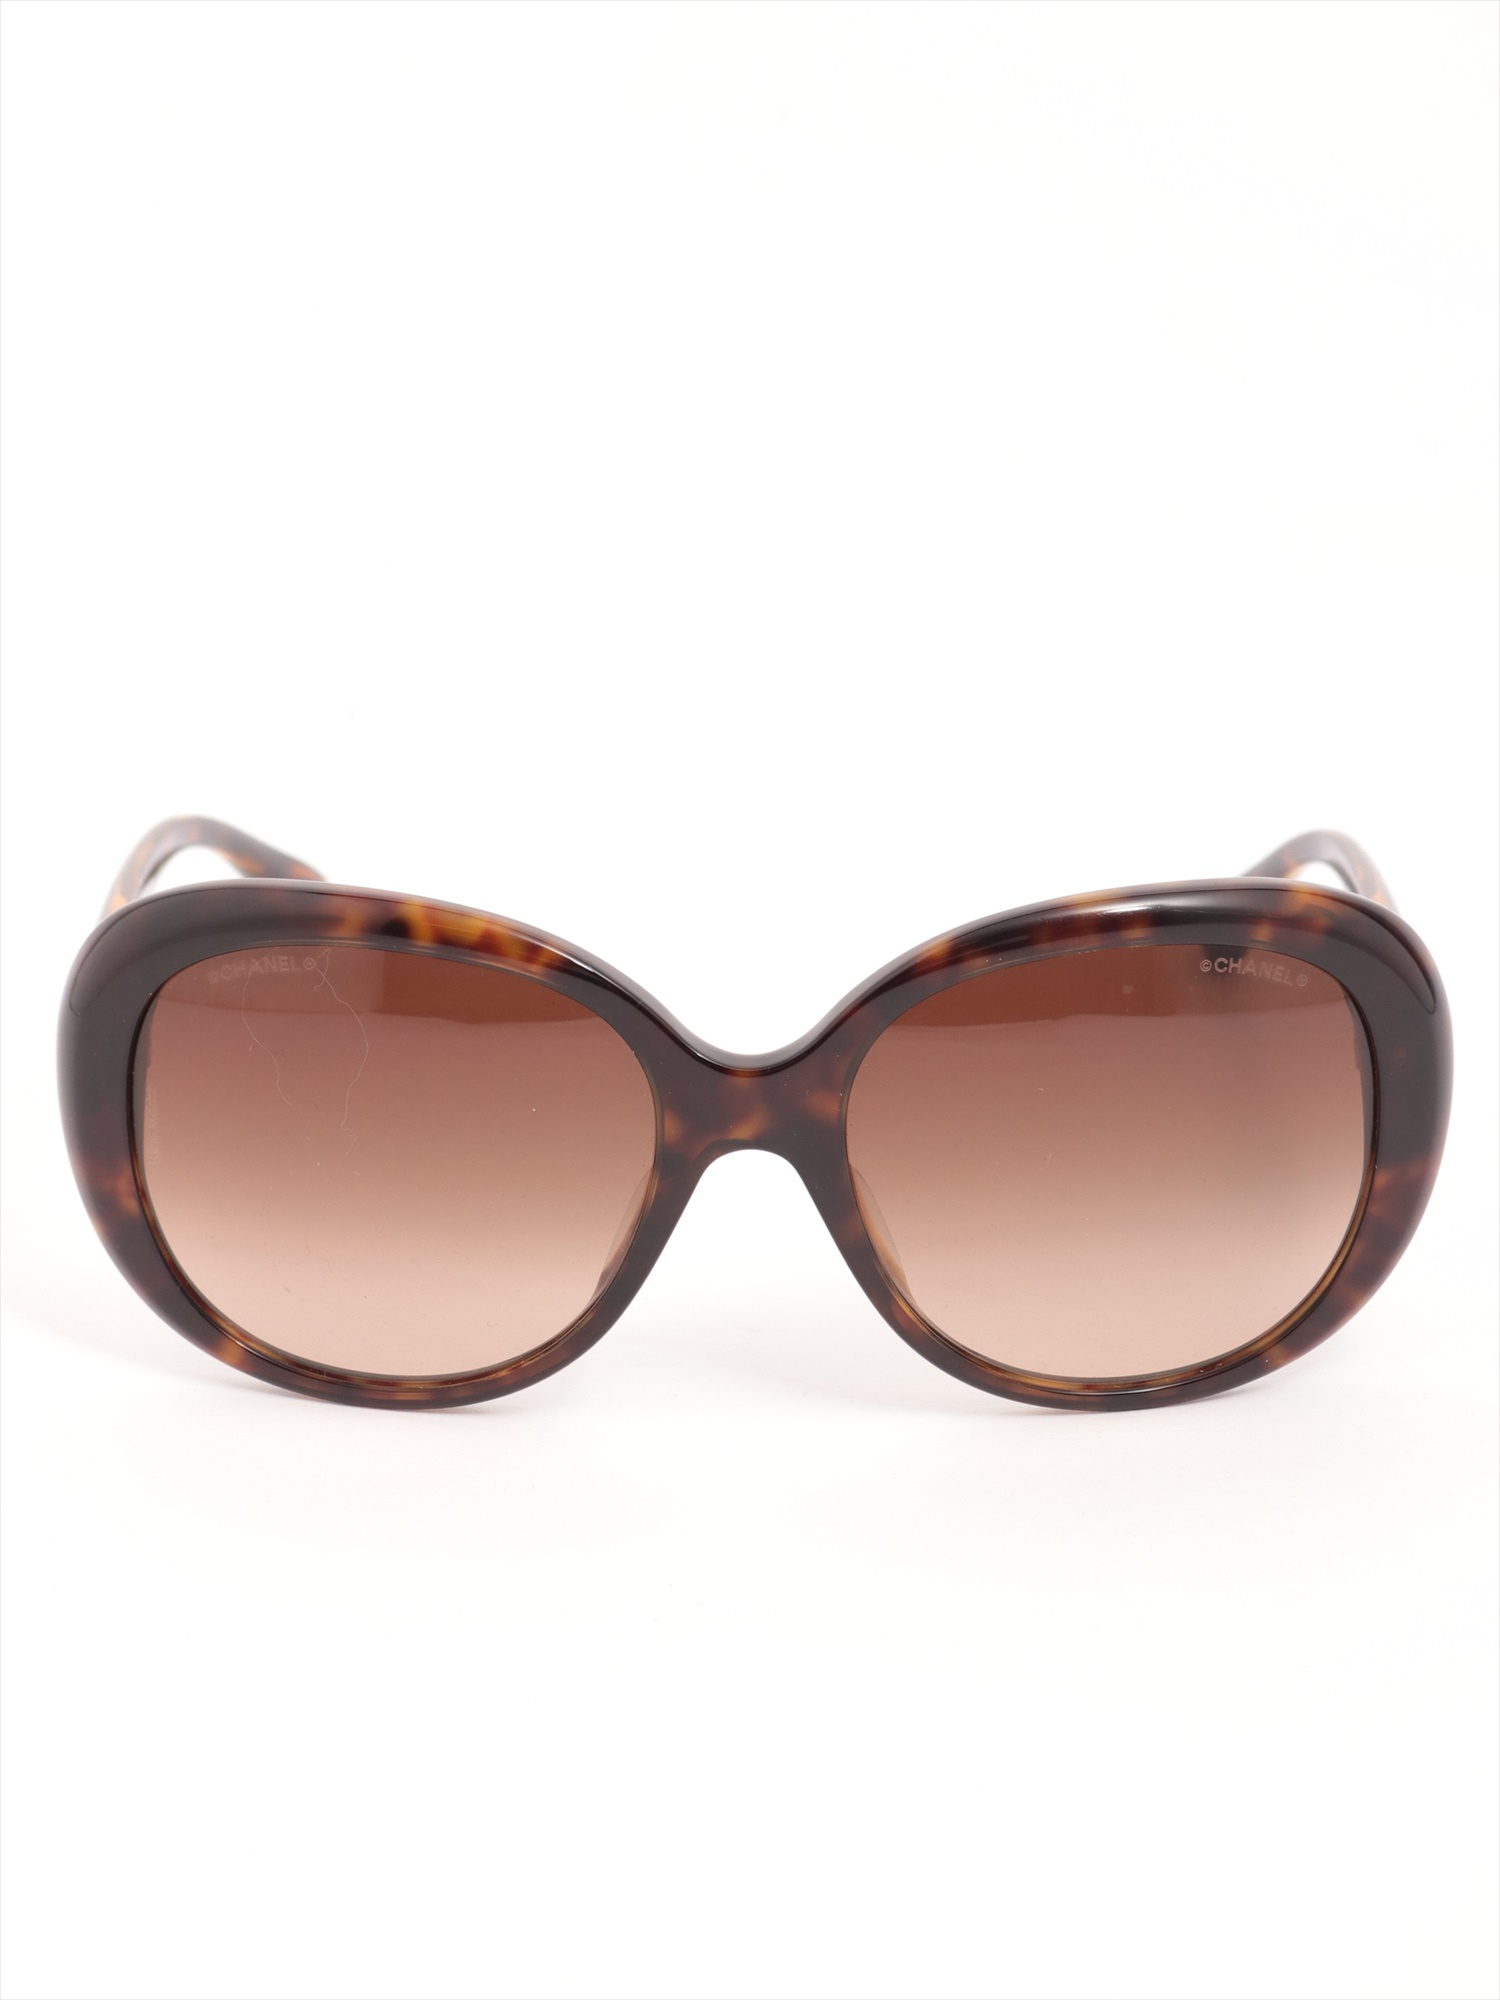 [Used goods] Chanel Coco mark sunglasses plastic Brown 5312-A